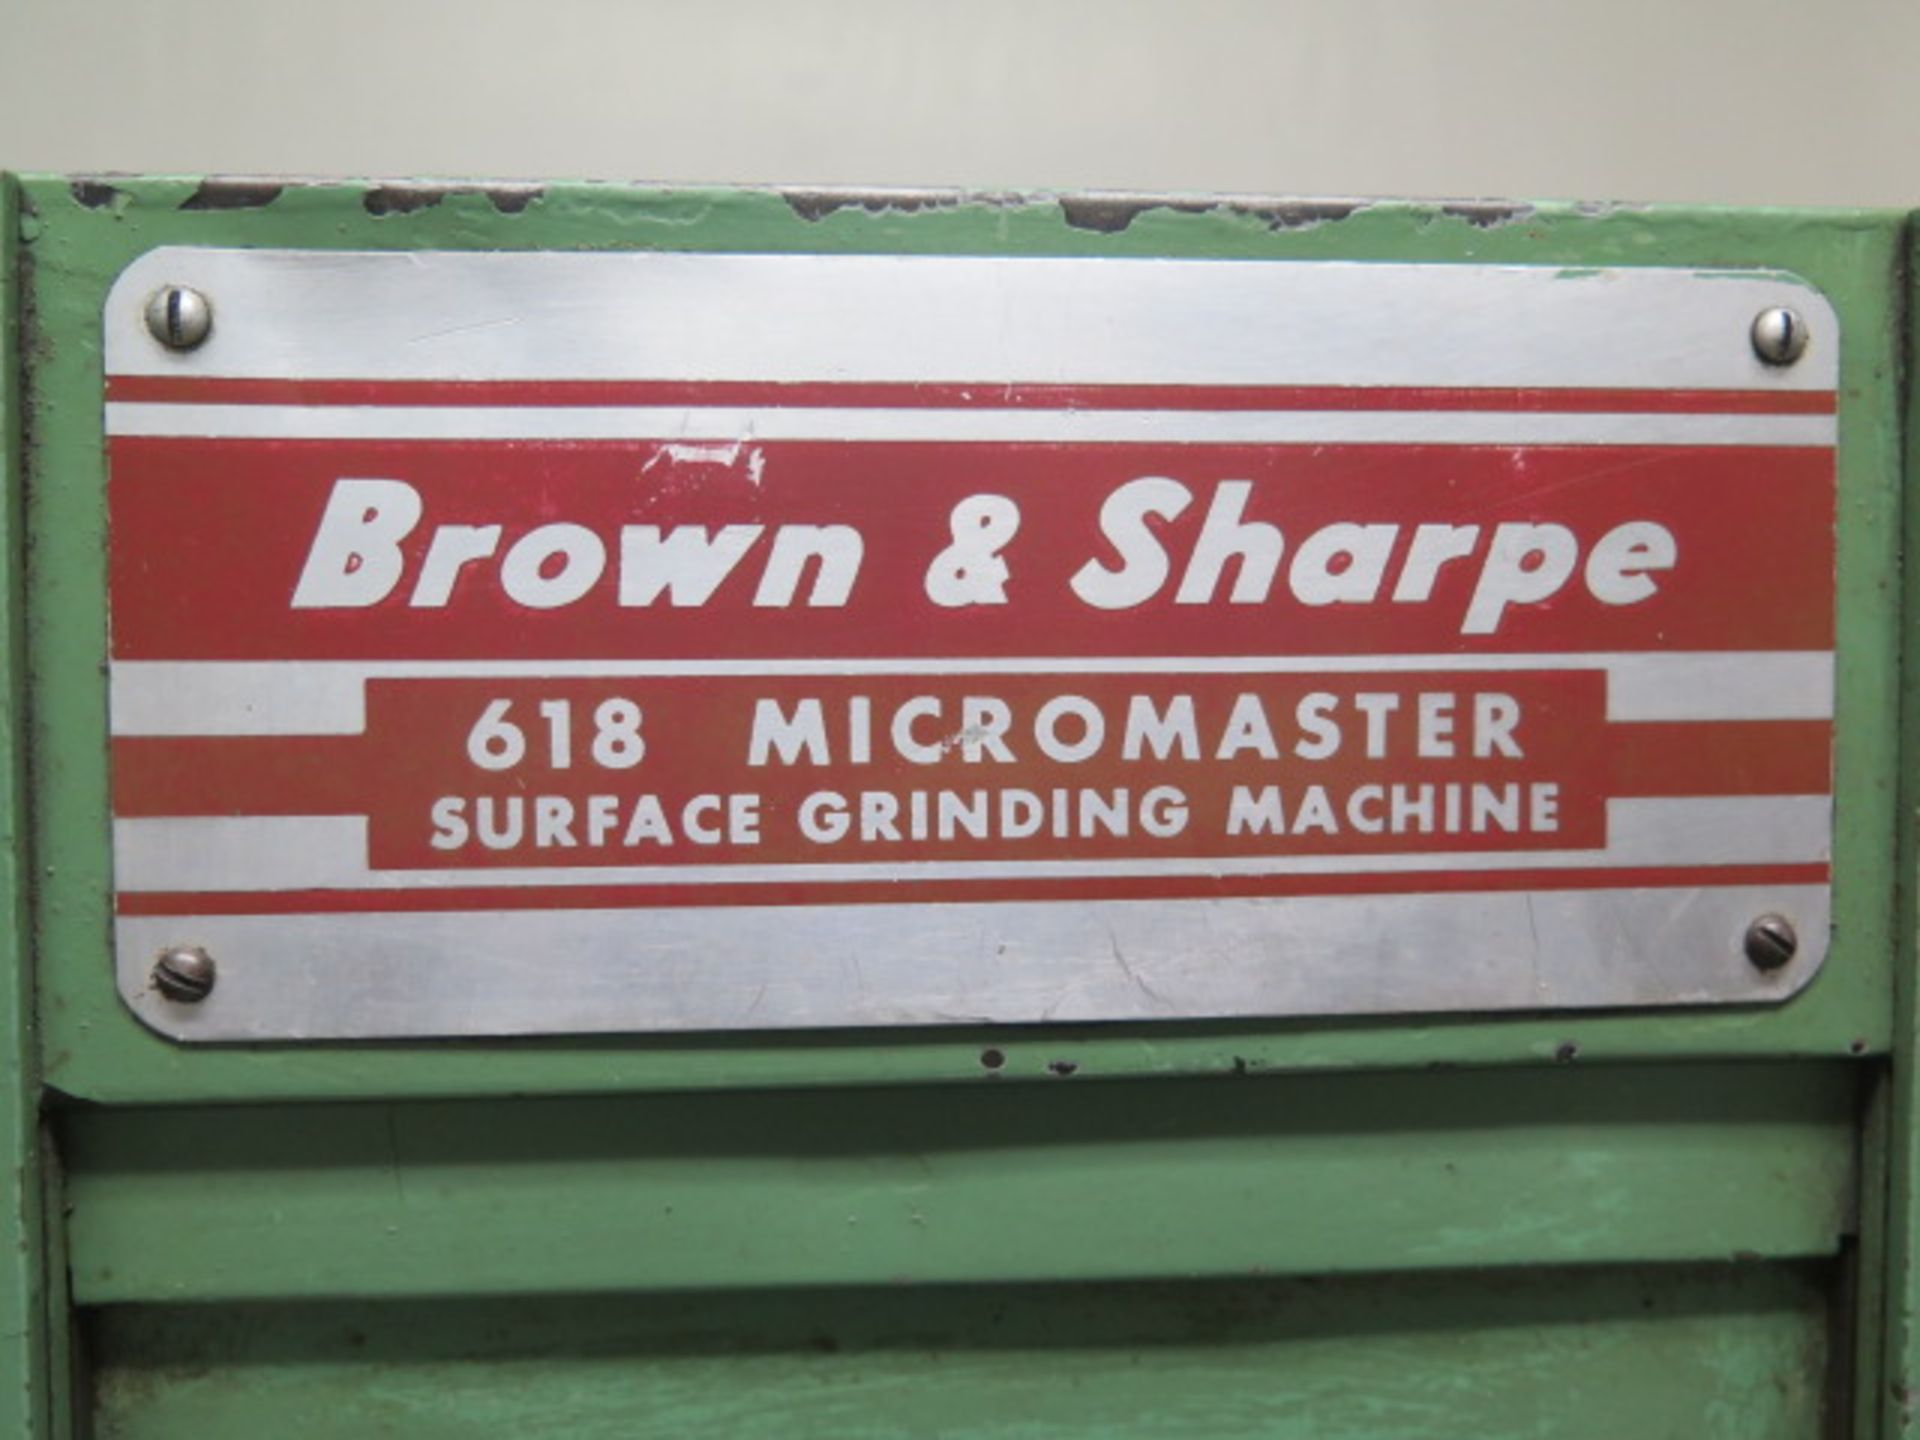 Lot 53 - Brown & Sharpe 618 Micromaster Automatic Surface Grinder w/ Electromagnetic Chuck, Coolant